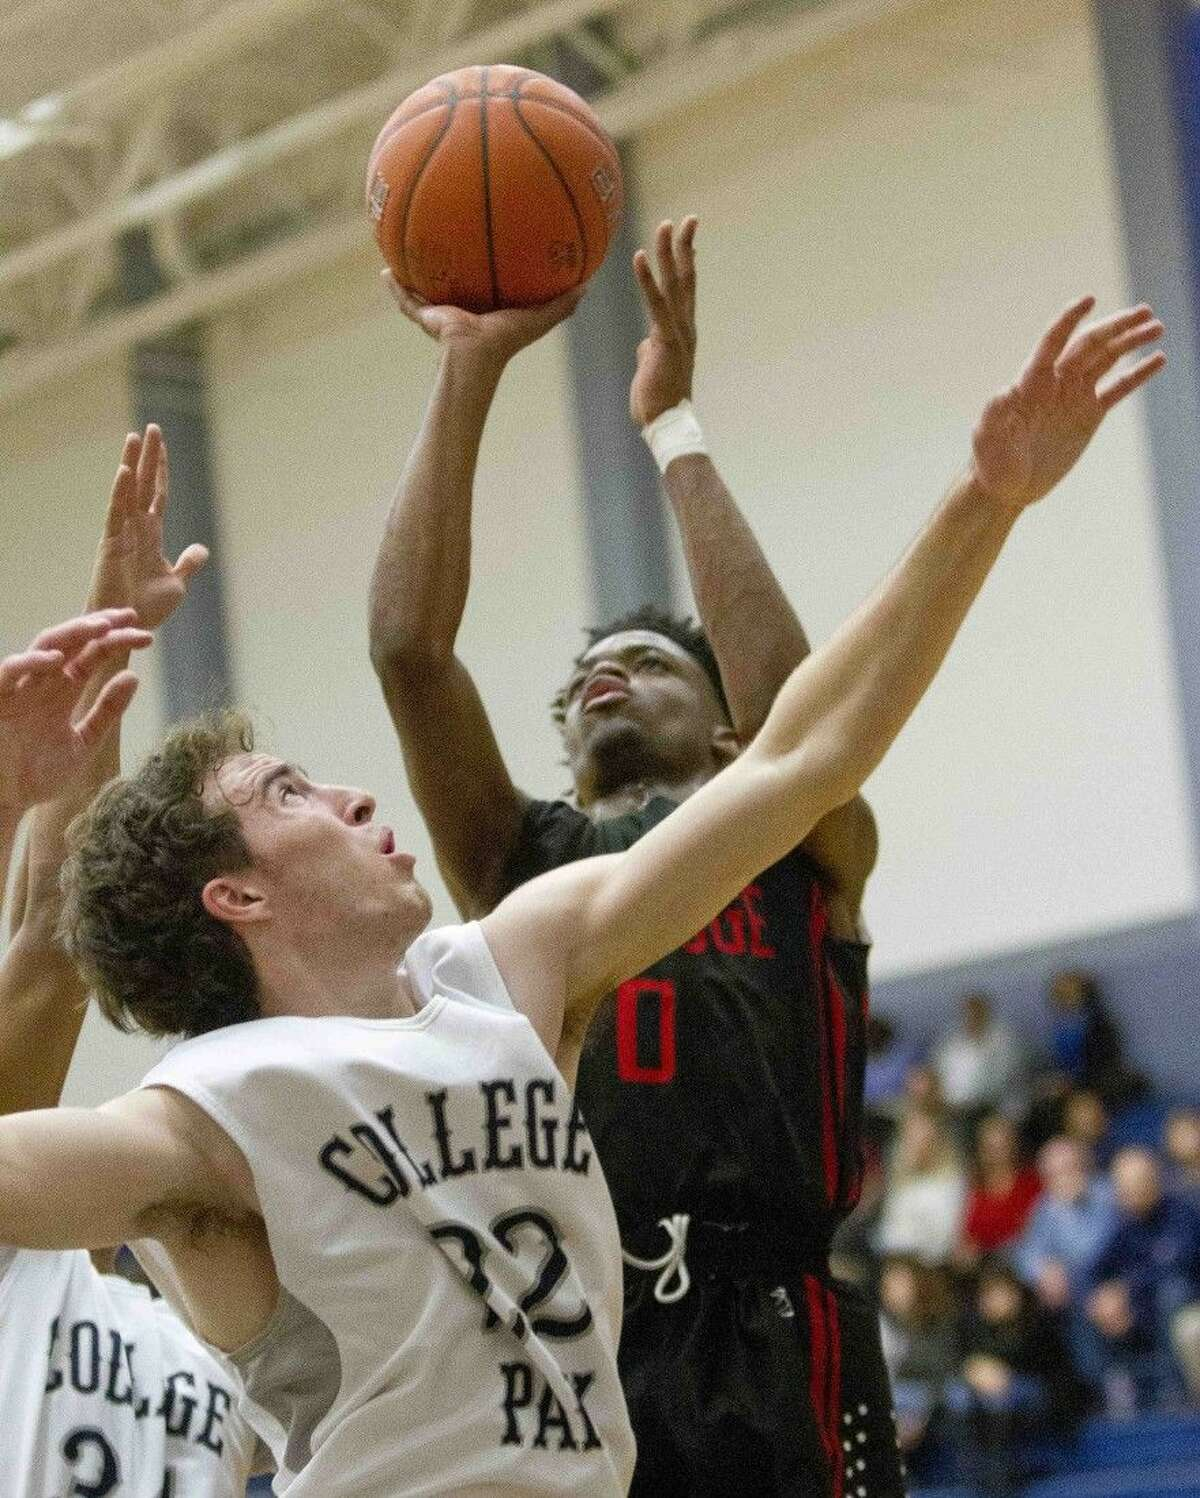 Oak Ridge guard Darius Love goes up for a shot as College Park forward Dax DeBoer defends during a basketball game Tuesday. Go to HCNpics.com to purchase this photo, and others like it.